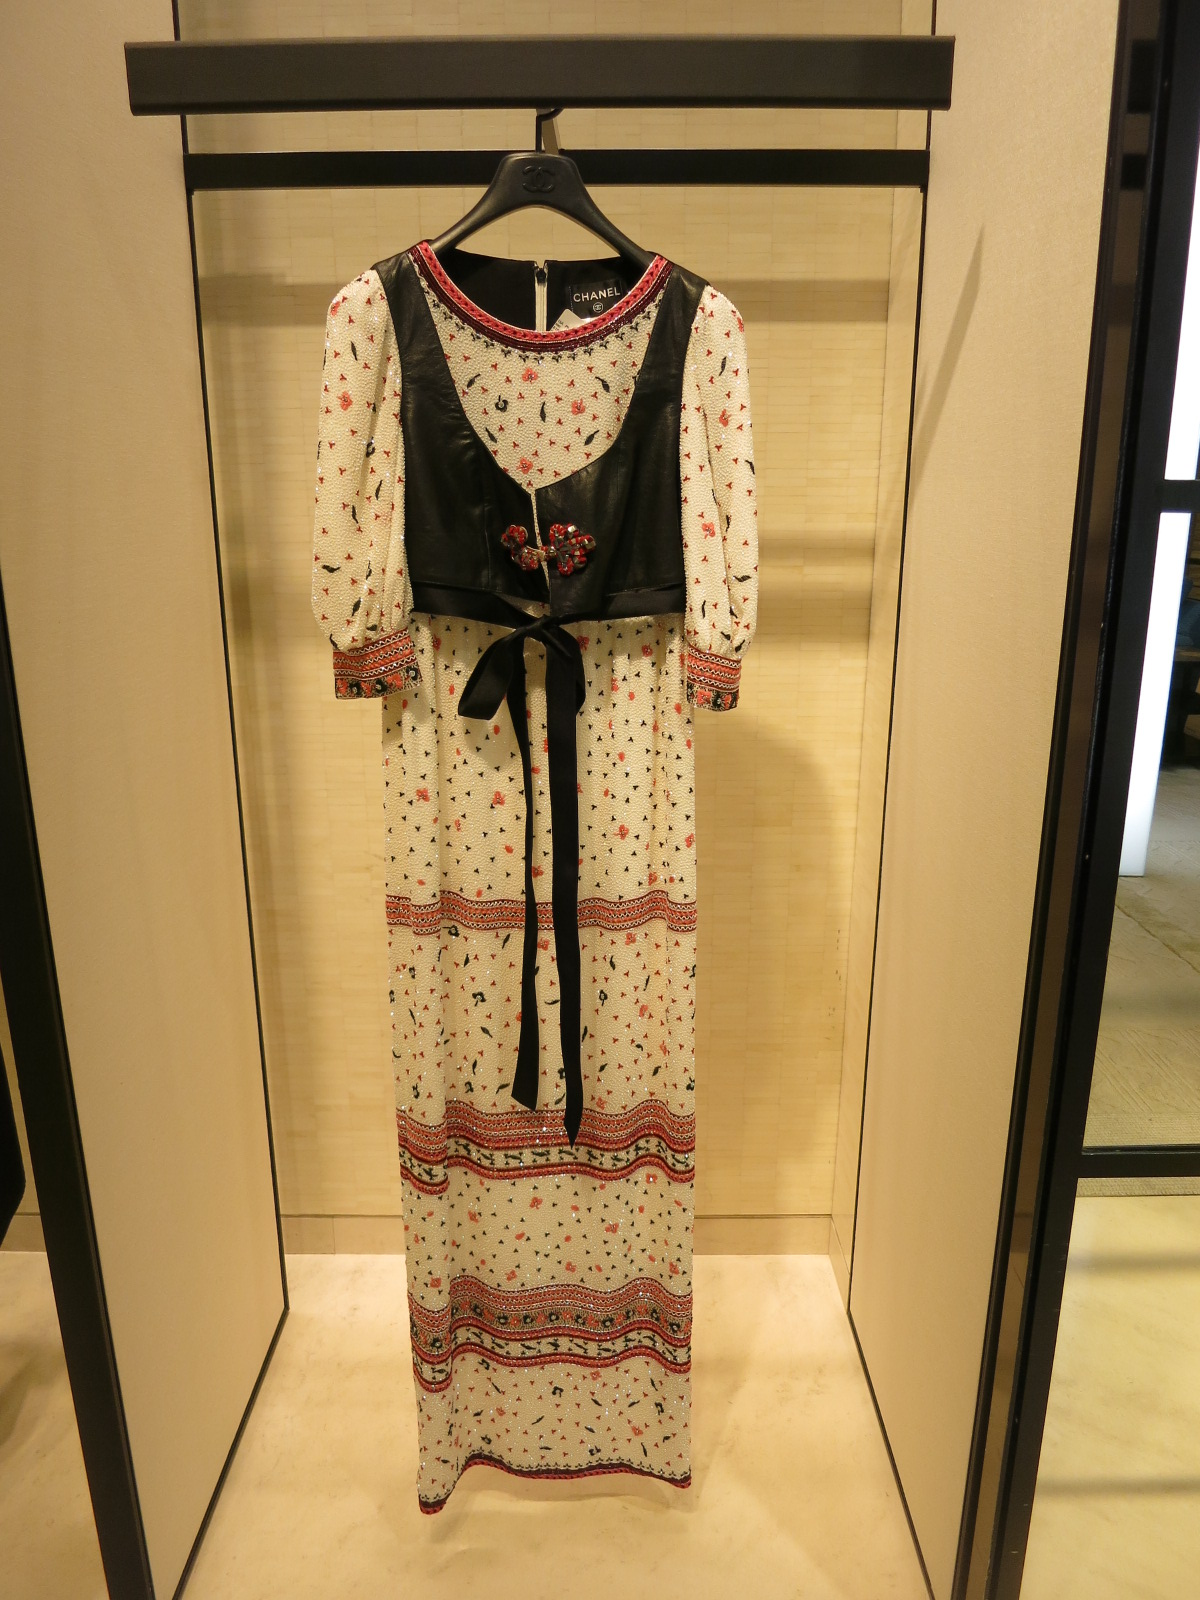 Coco Chanel 31 rue Cambord, Paris. An embroidered gown from a 2015 Chanel collection.